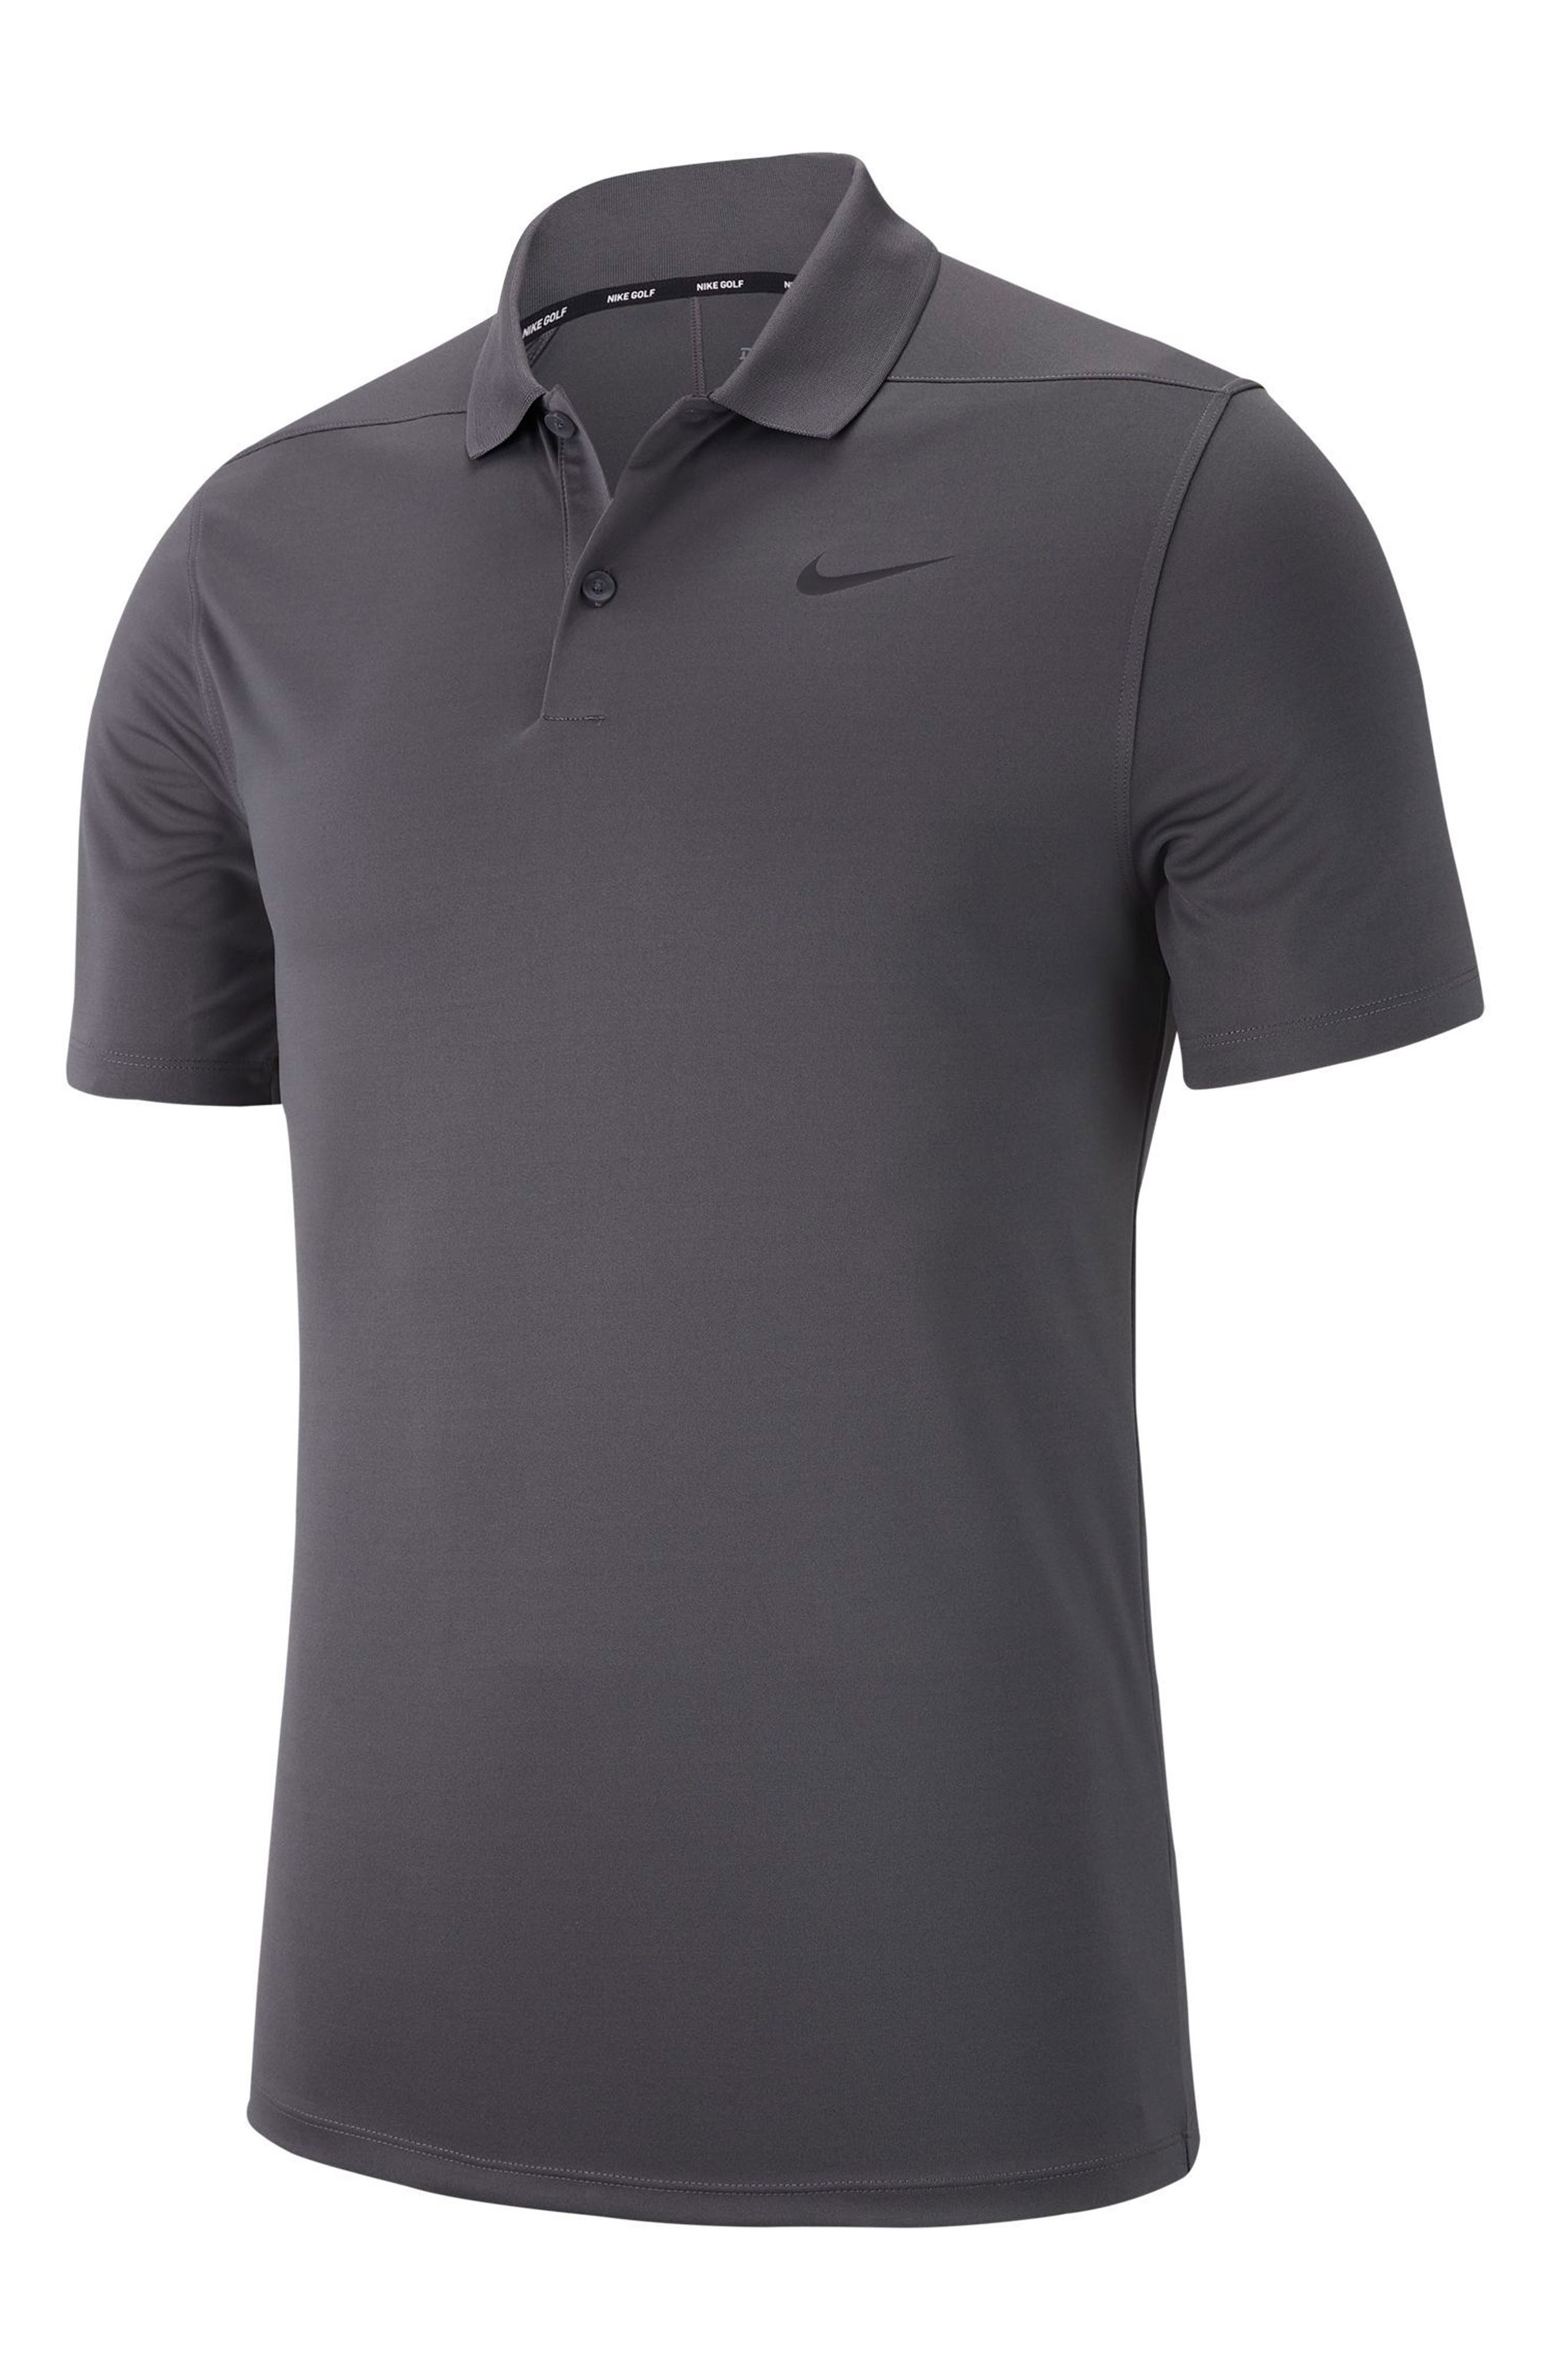 Dry Victory Golf Polo,                             Alternate thumbnail 2, color,                             DARK GREY/ BLACK